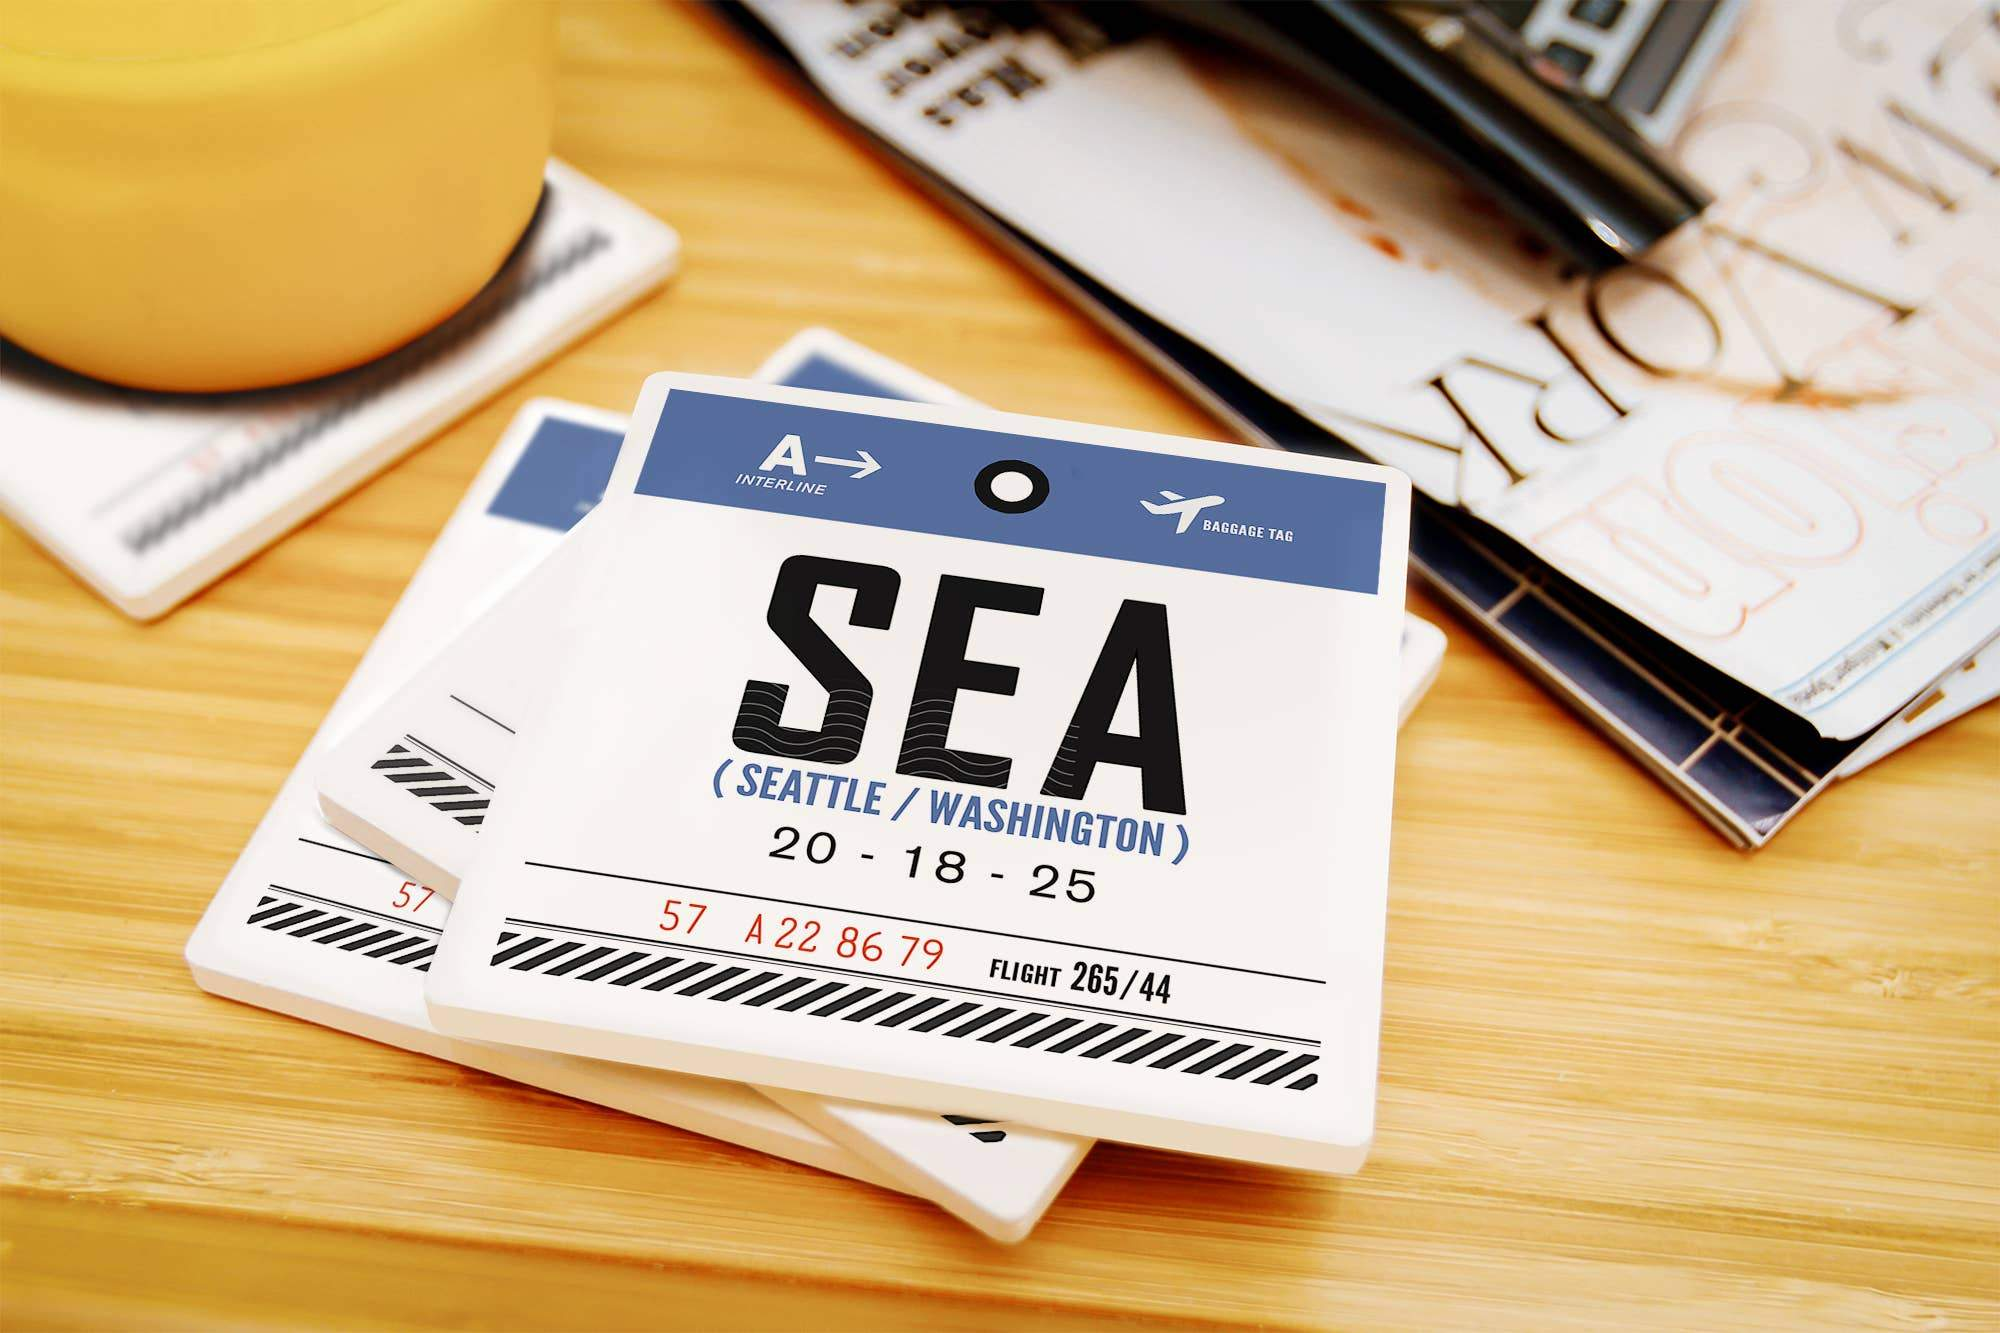 SEA - Luggage Tag Ceramic Coaster